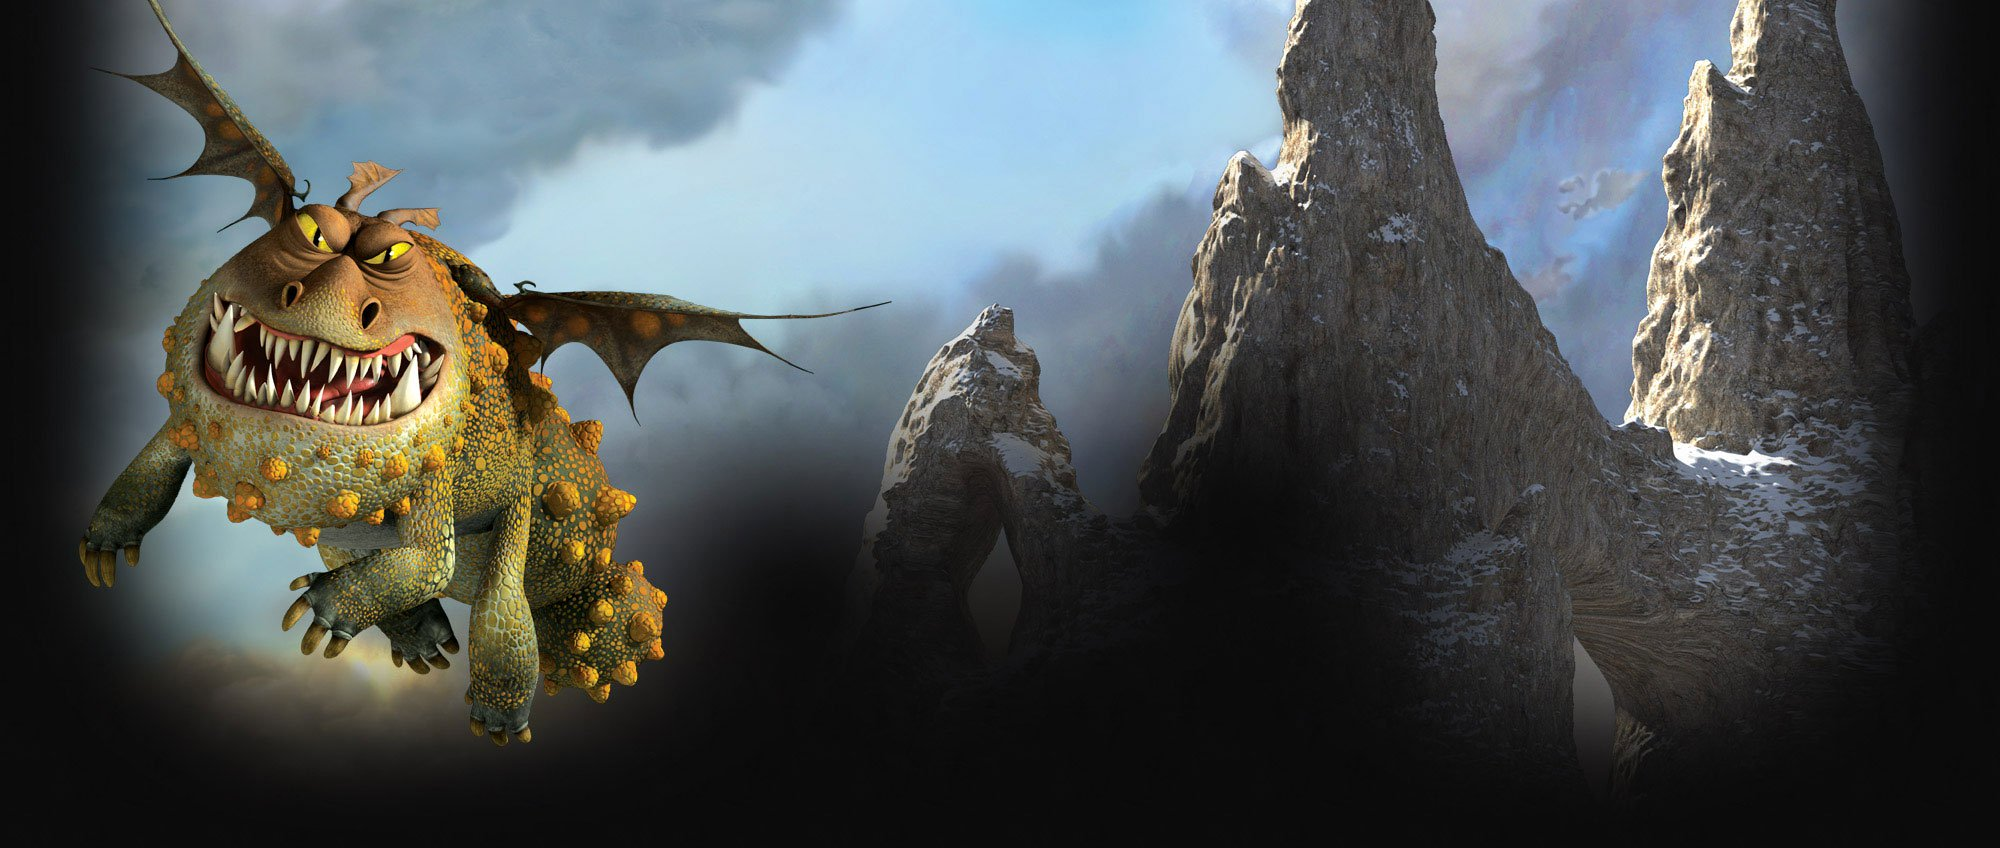 HTTYD on Mobile | iOS and Android Dragon Games | School of Dragons